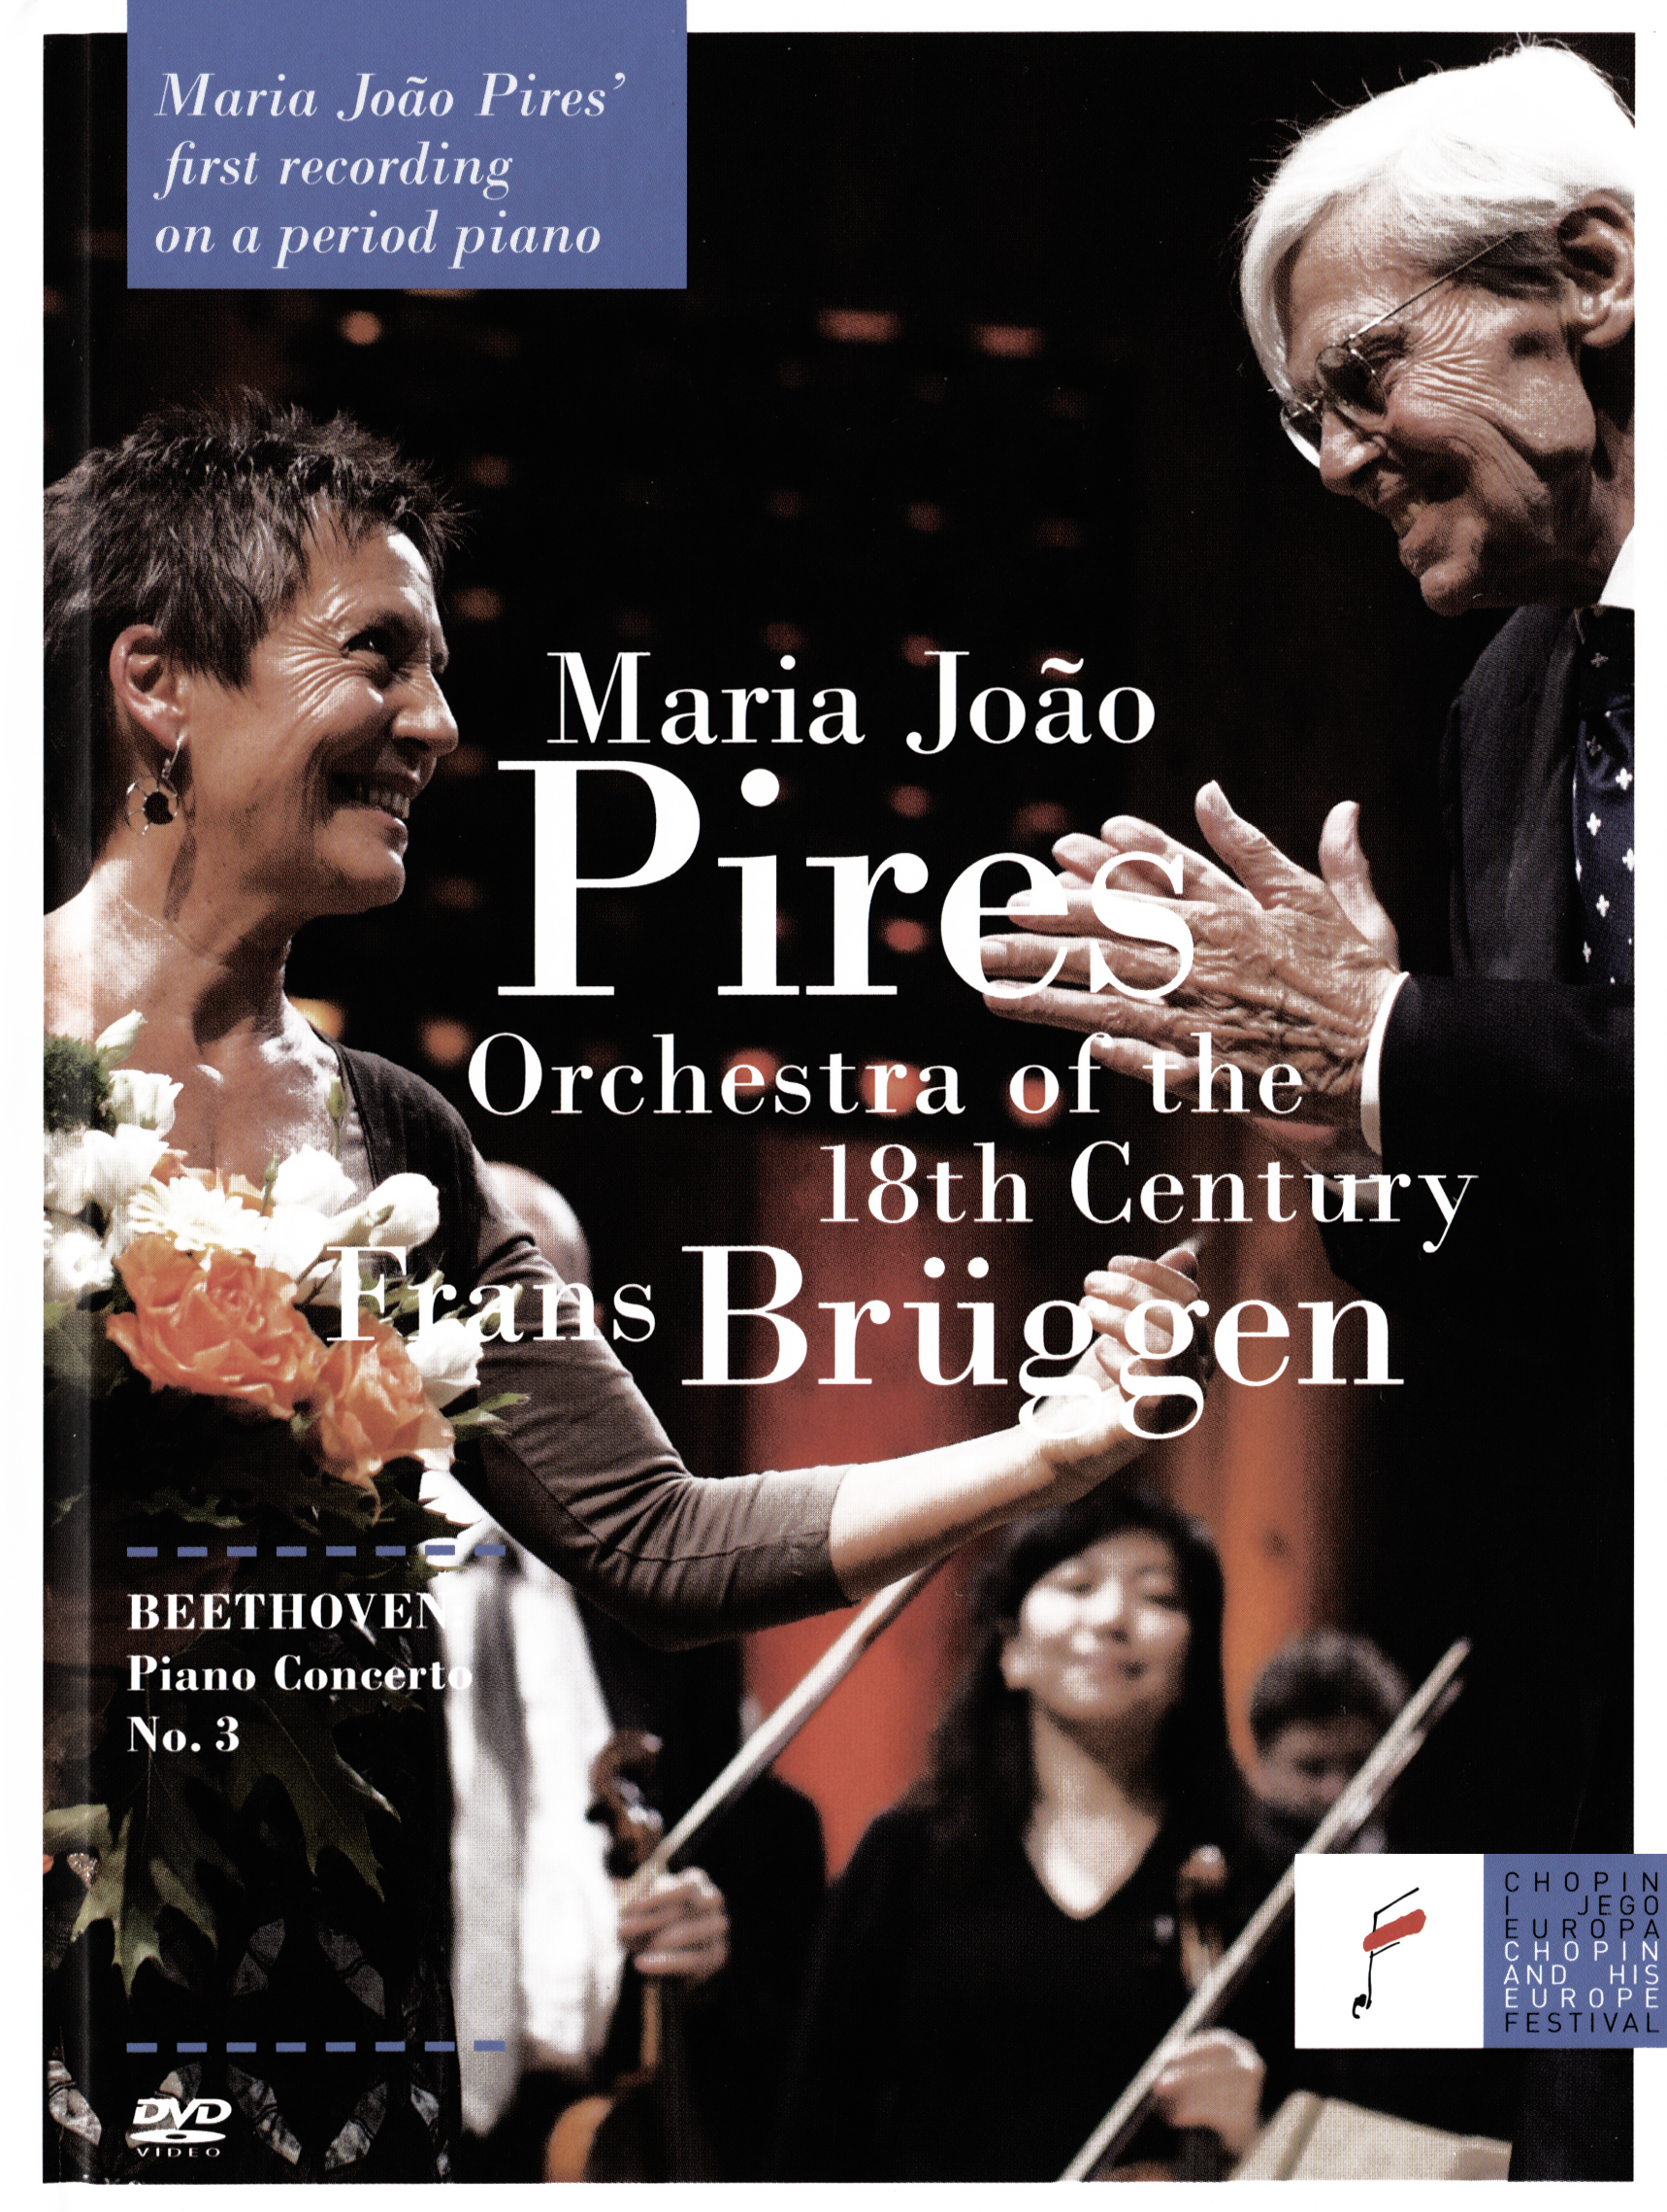 Maria João Pires/Frans Brüggen/Orchestra of the 18th Century: Beethoven Piano Concerto - No. 3